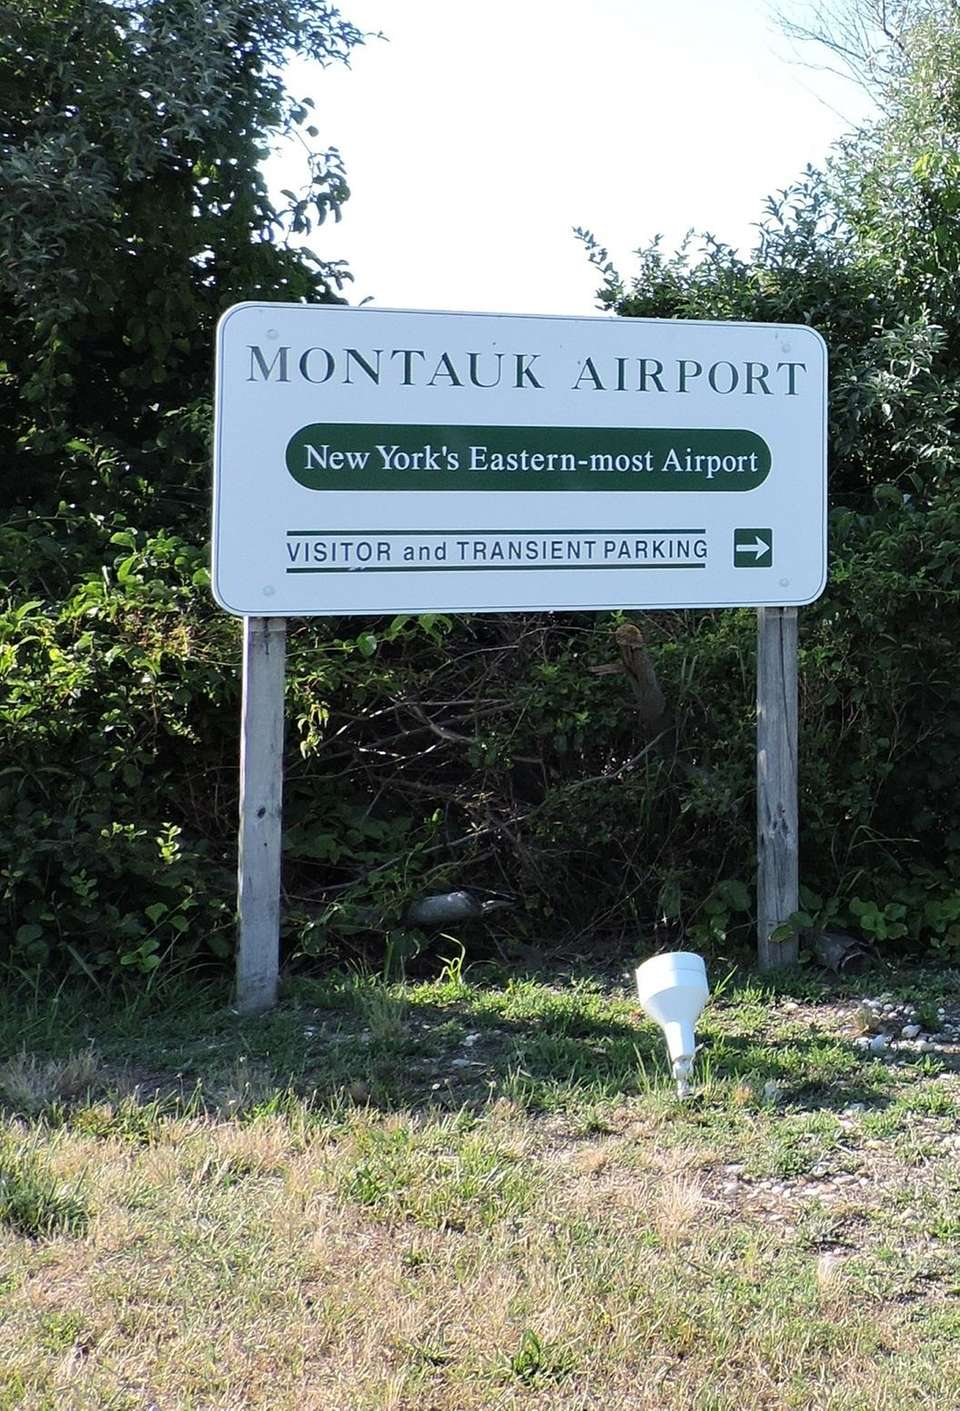 Montauk Airport (KMTP) is the easternmost airport in